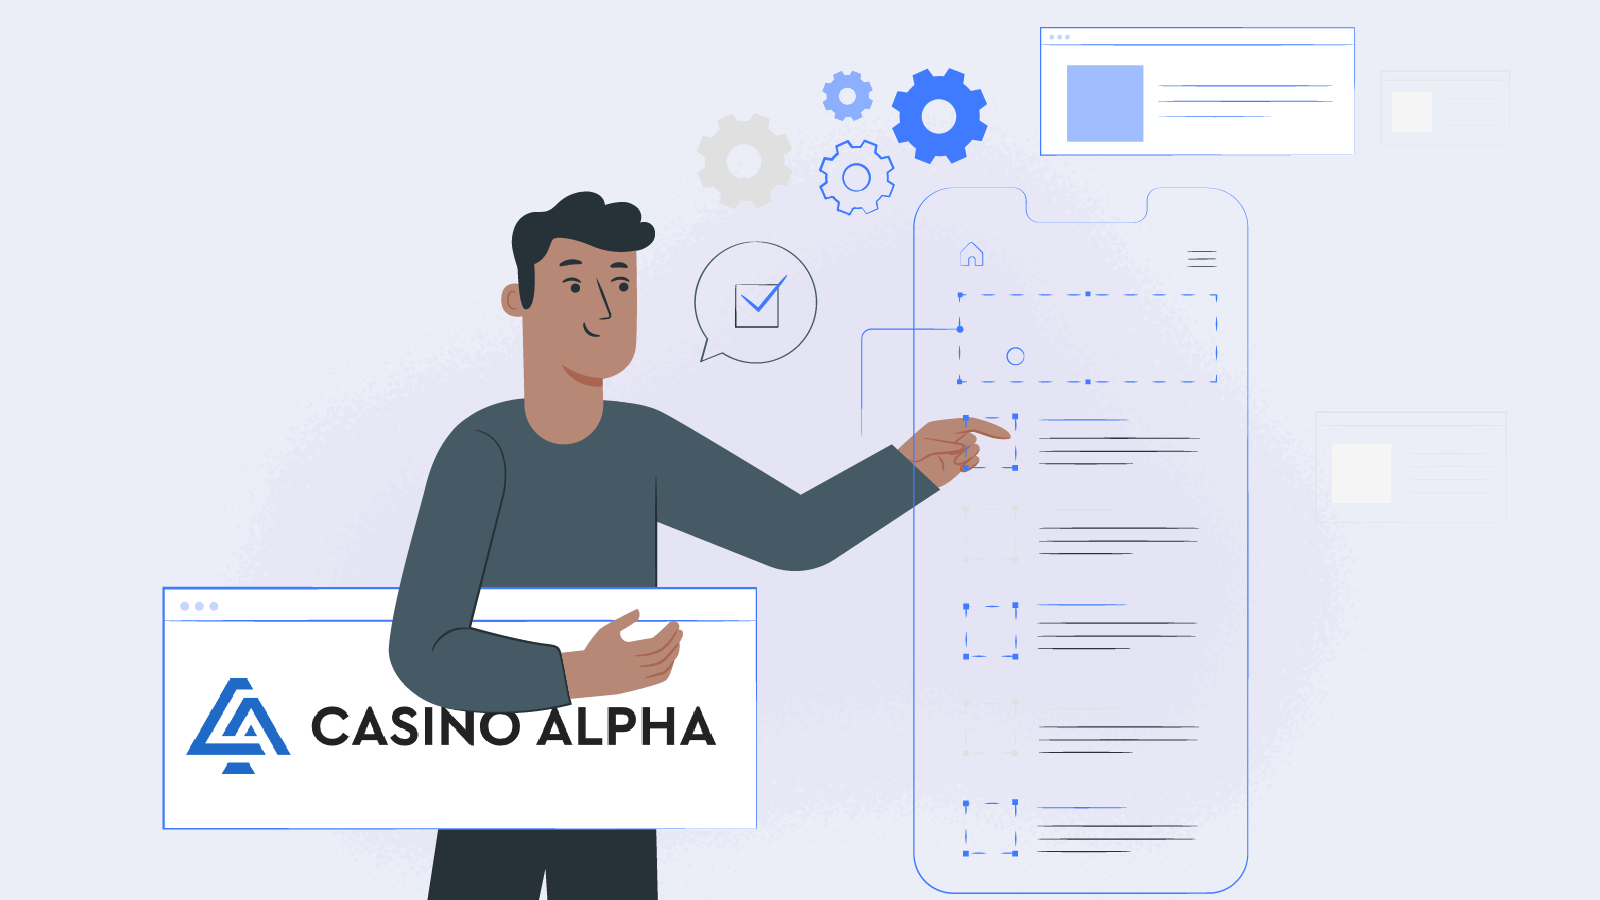 The CasinoAlpha testing and conclusions